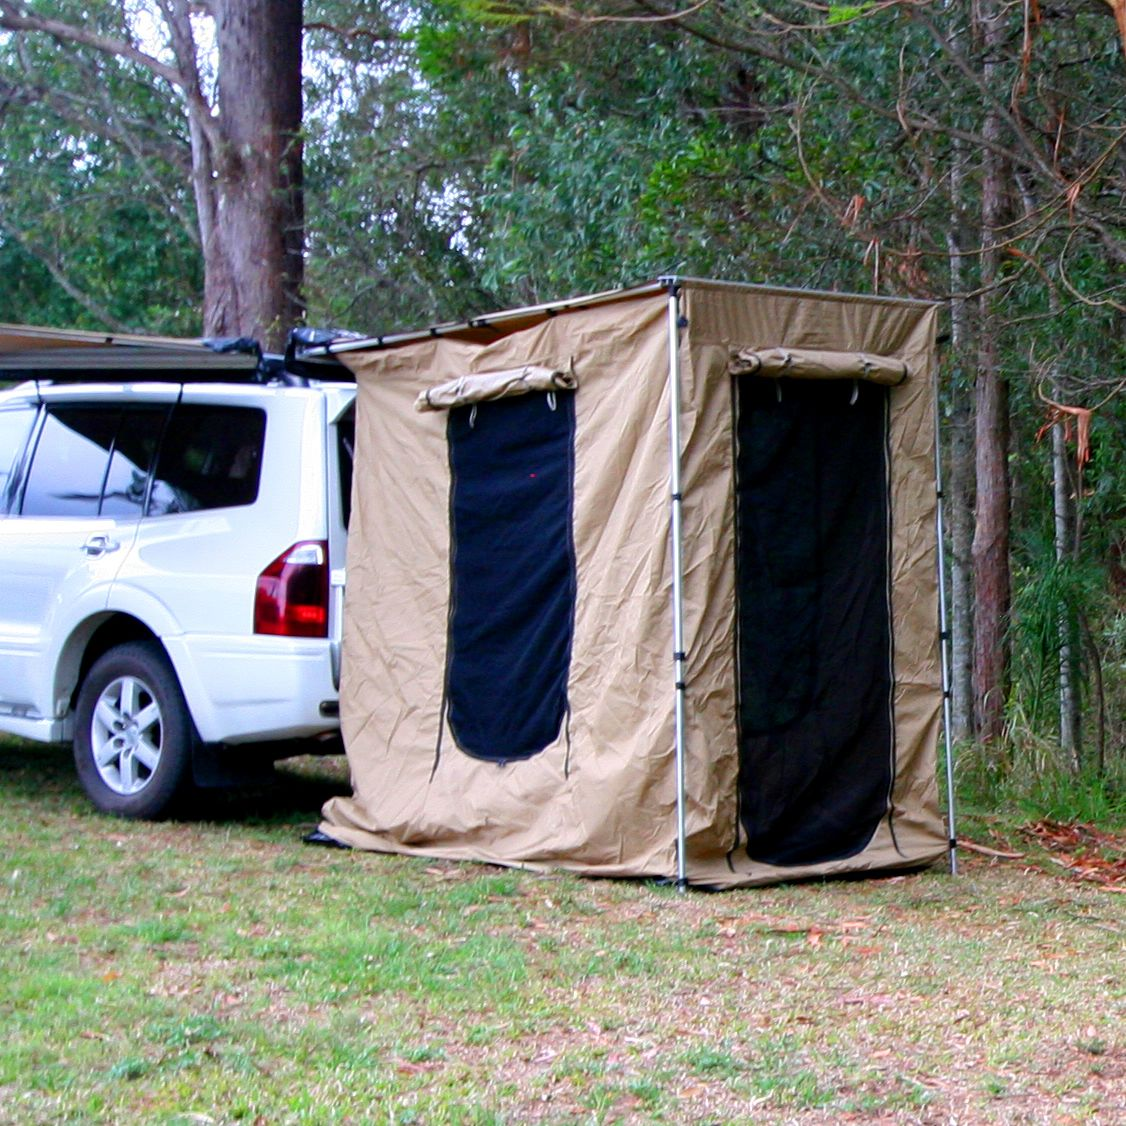 4Wd Awning Tent tough rear awning tent 1.4x2m | tent, canvas tent, camping hacks